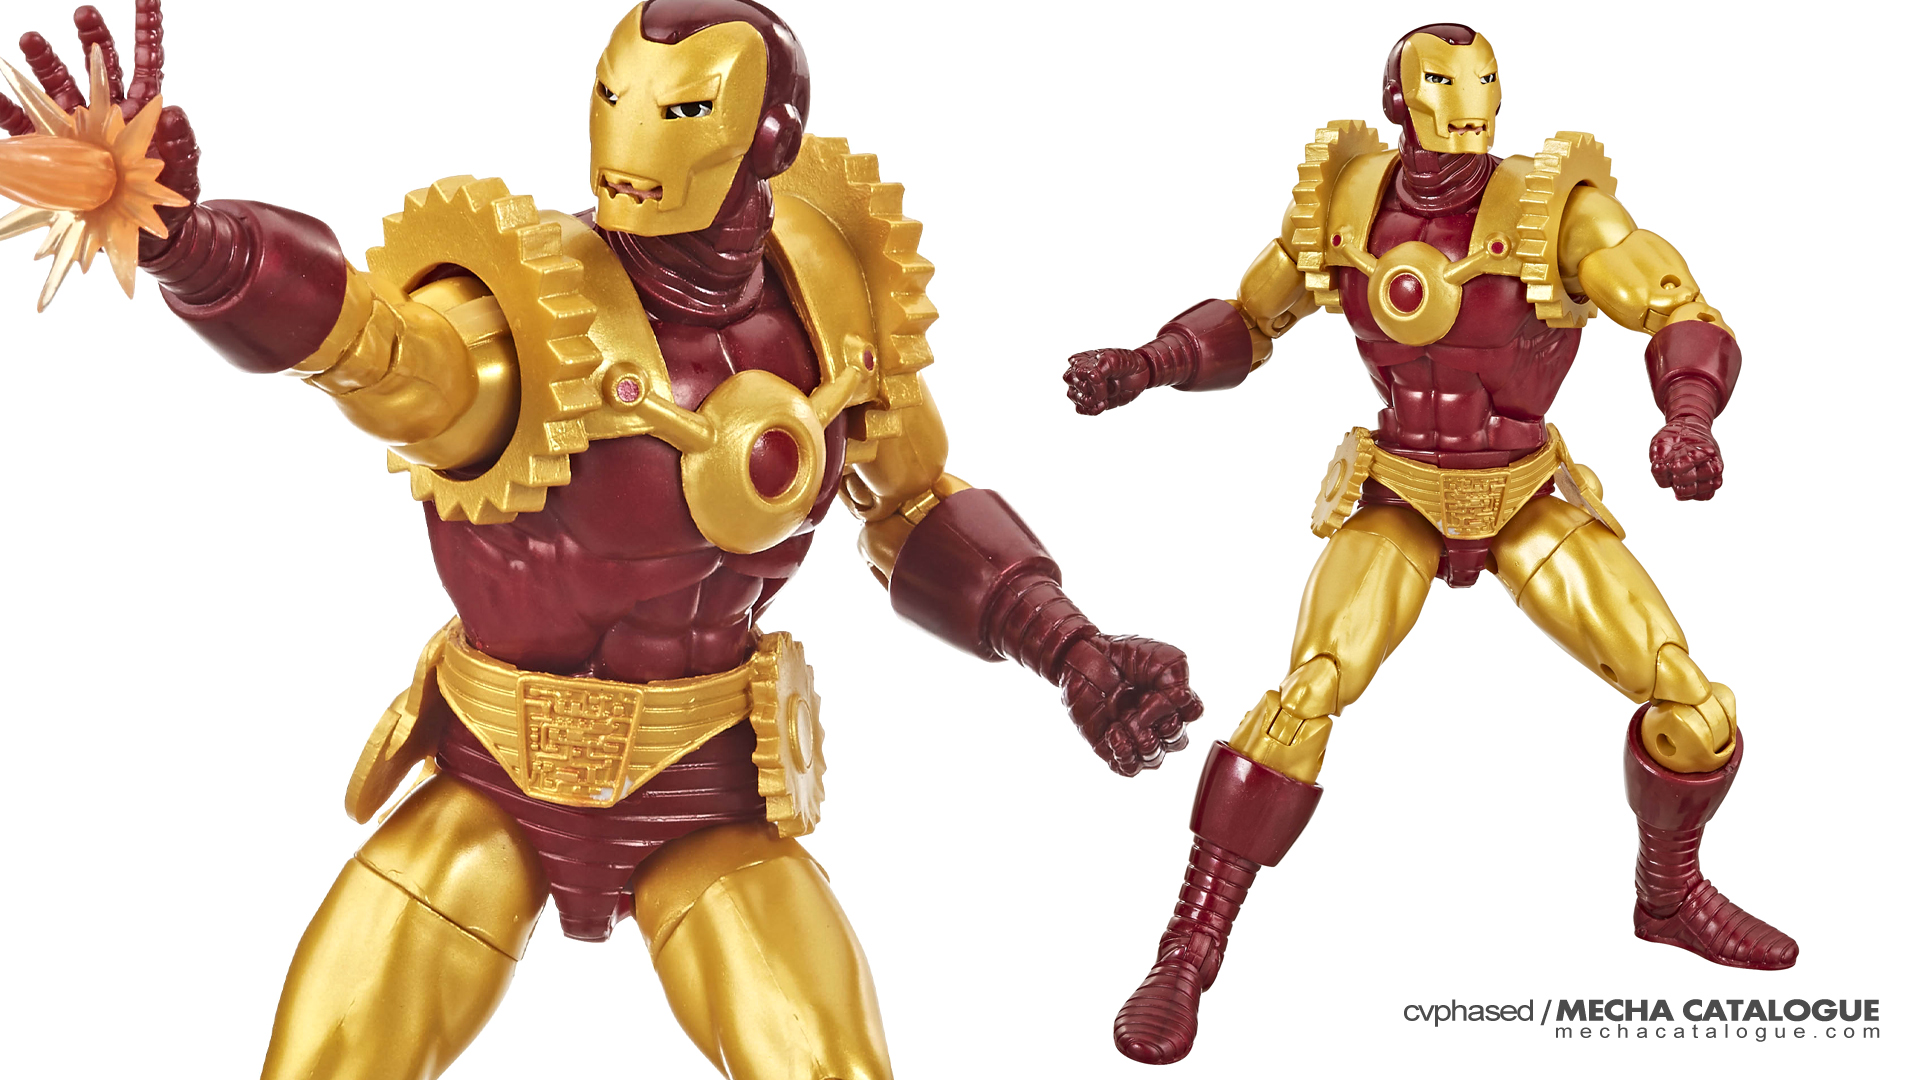 #NewYorkToyFair 2020 and My Unsolicited Thoughts: Iron Man